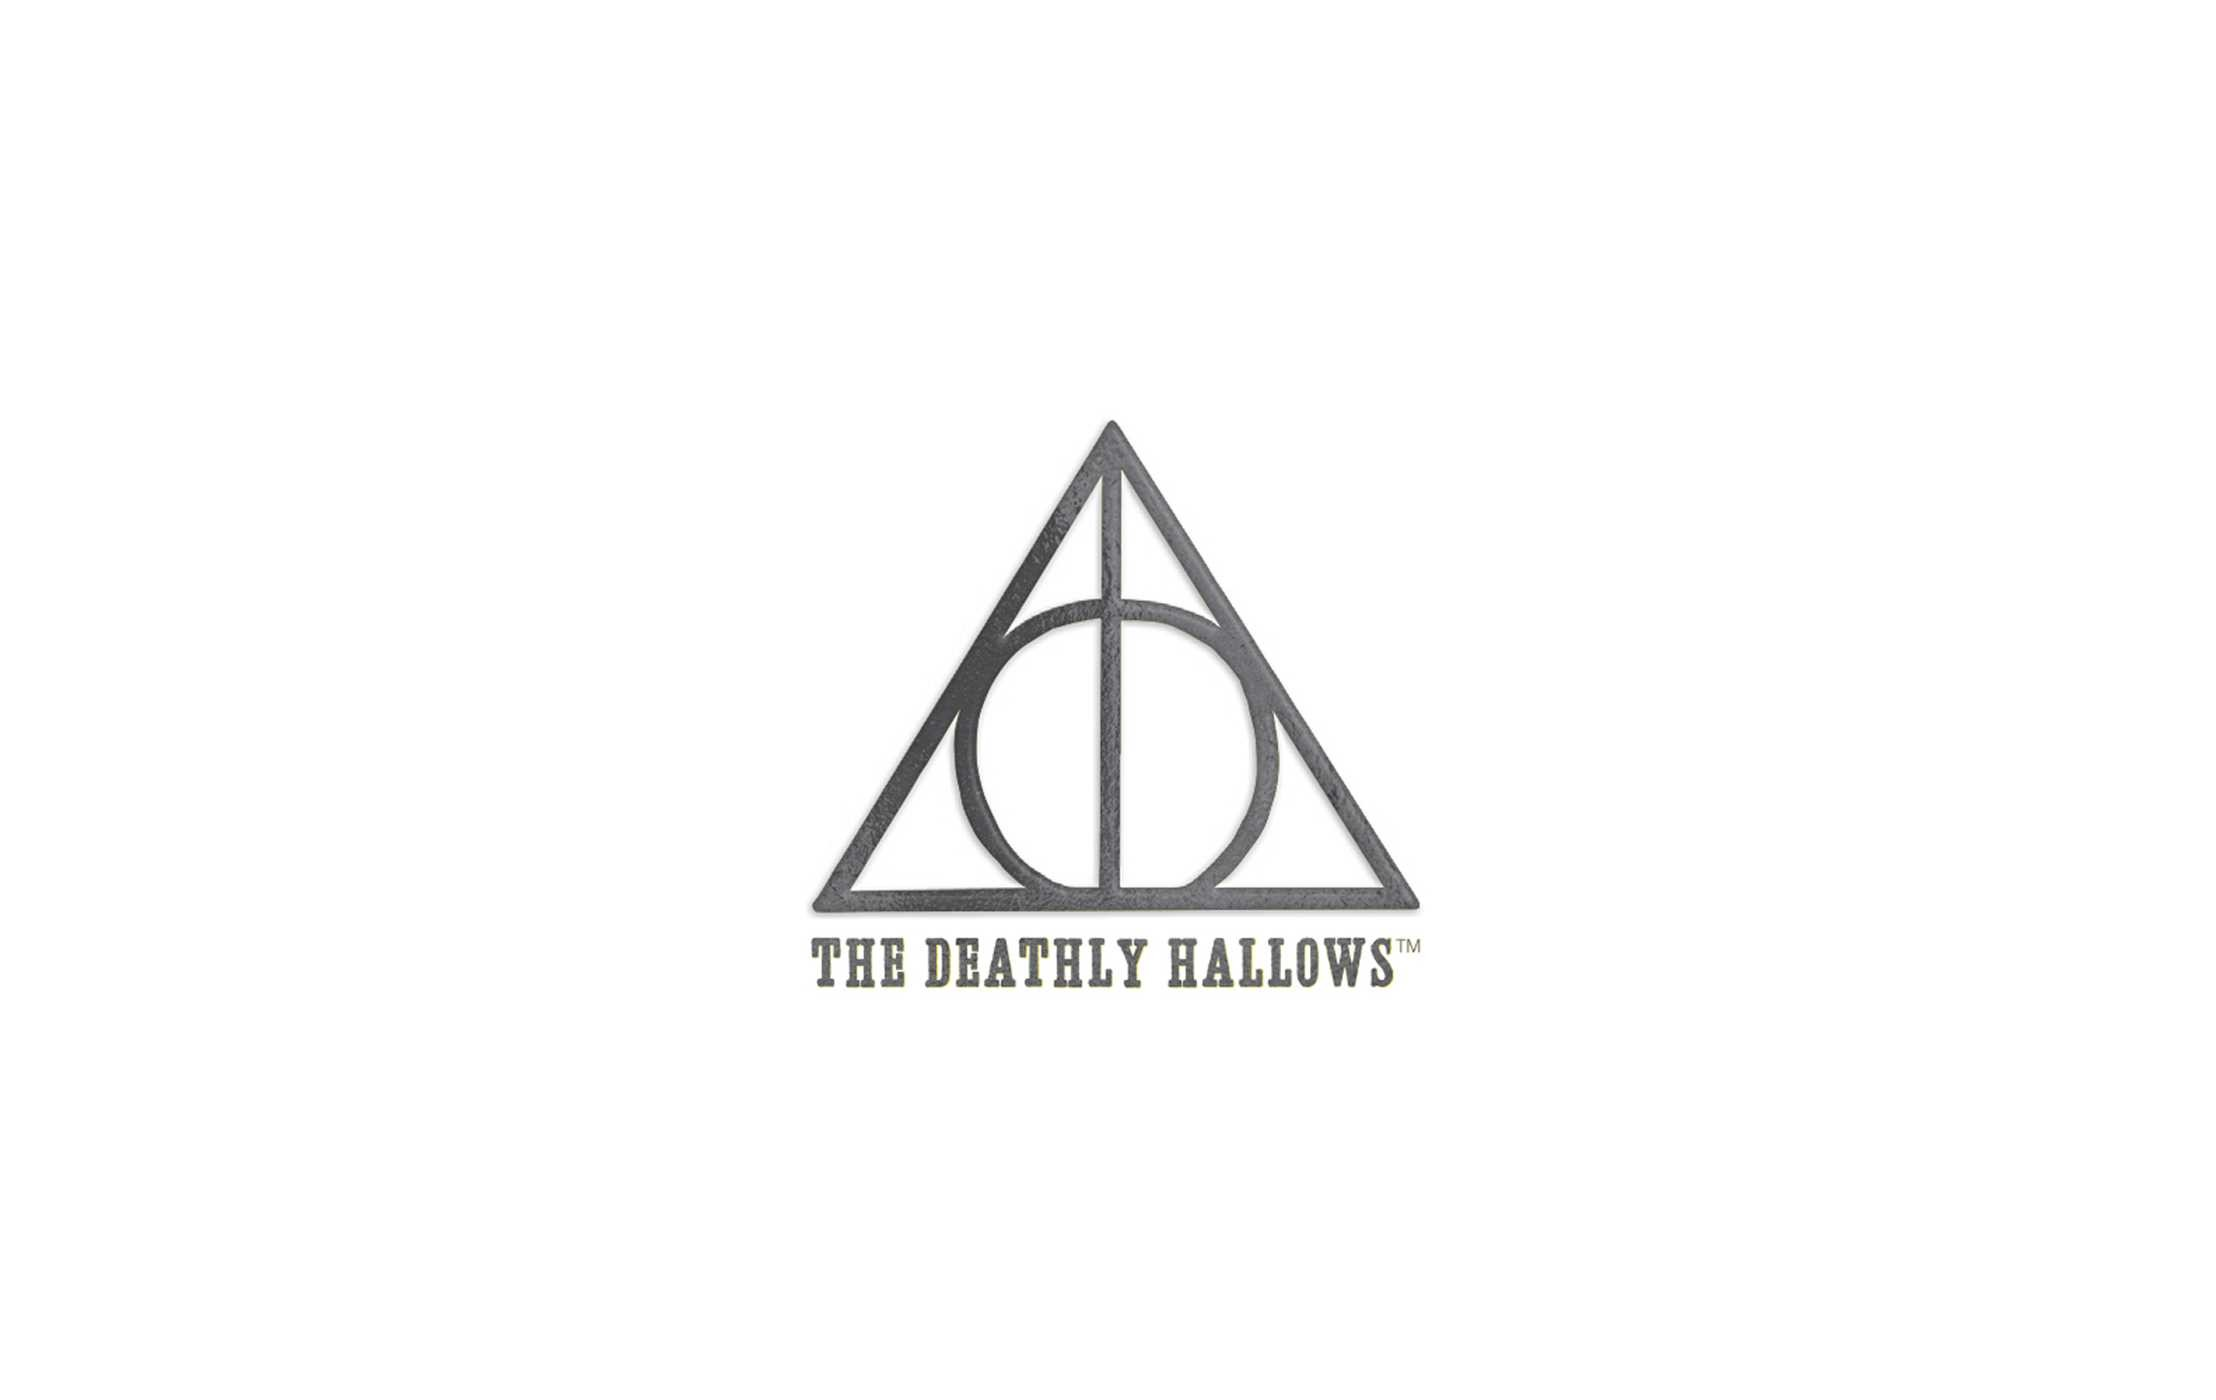 Harry potter deathly hallows foil note cards set of 10 9781683832911.in01